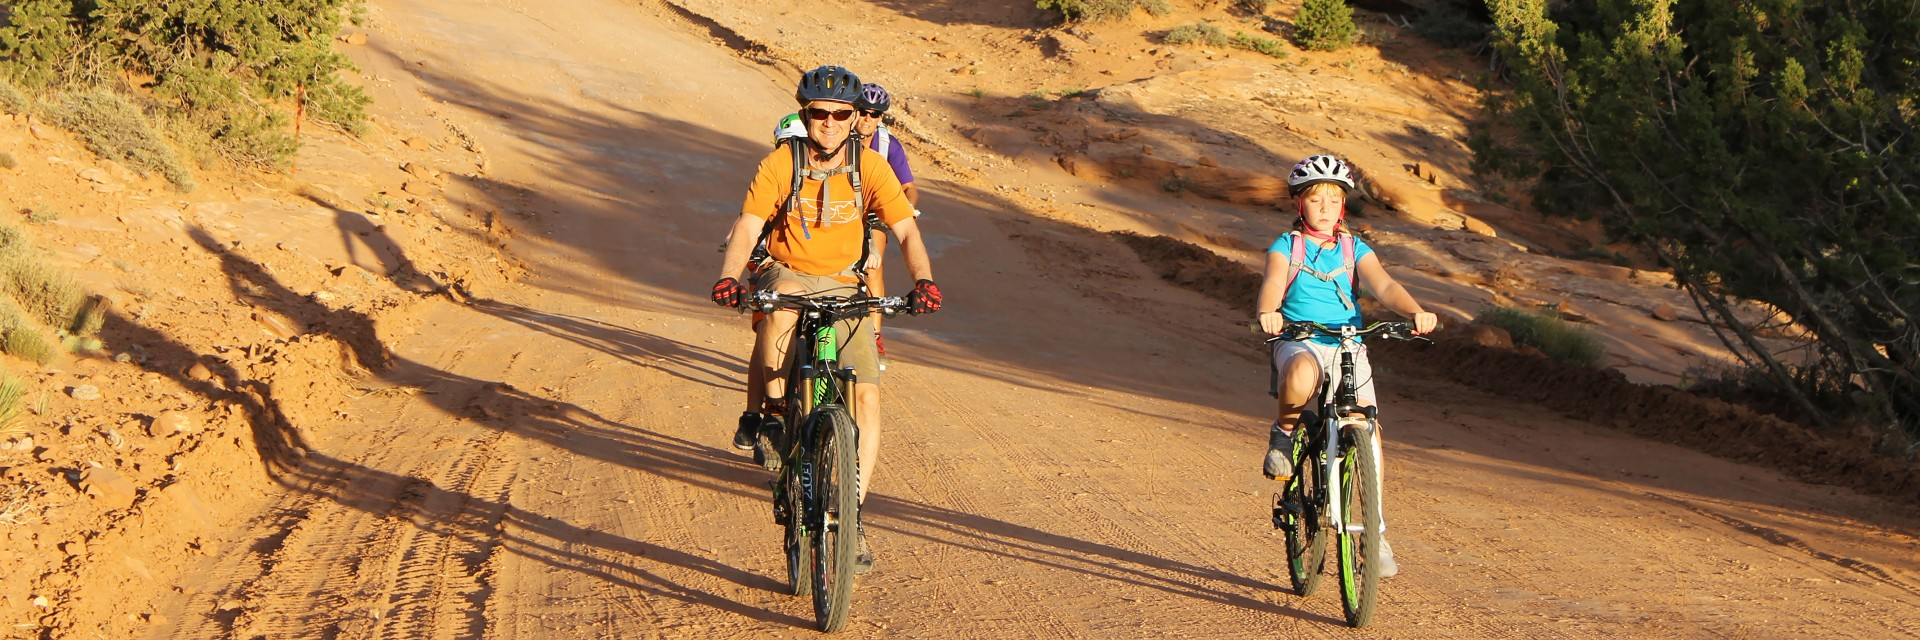 A guide leads kids down the Sand Flats Road on the Sunrise Downhill tour with the early morning sun shining